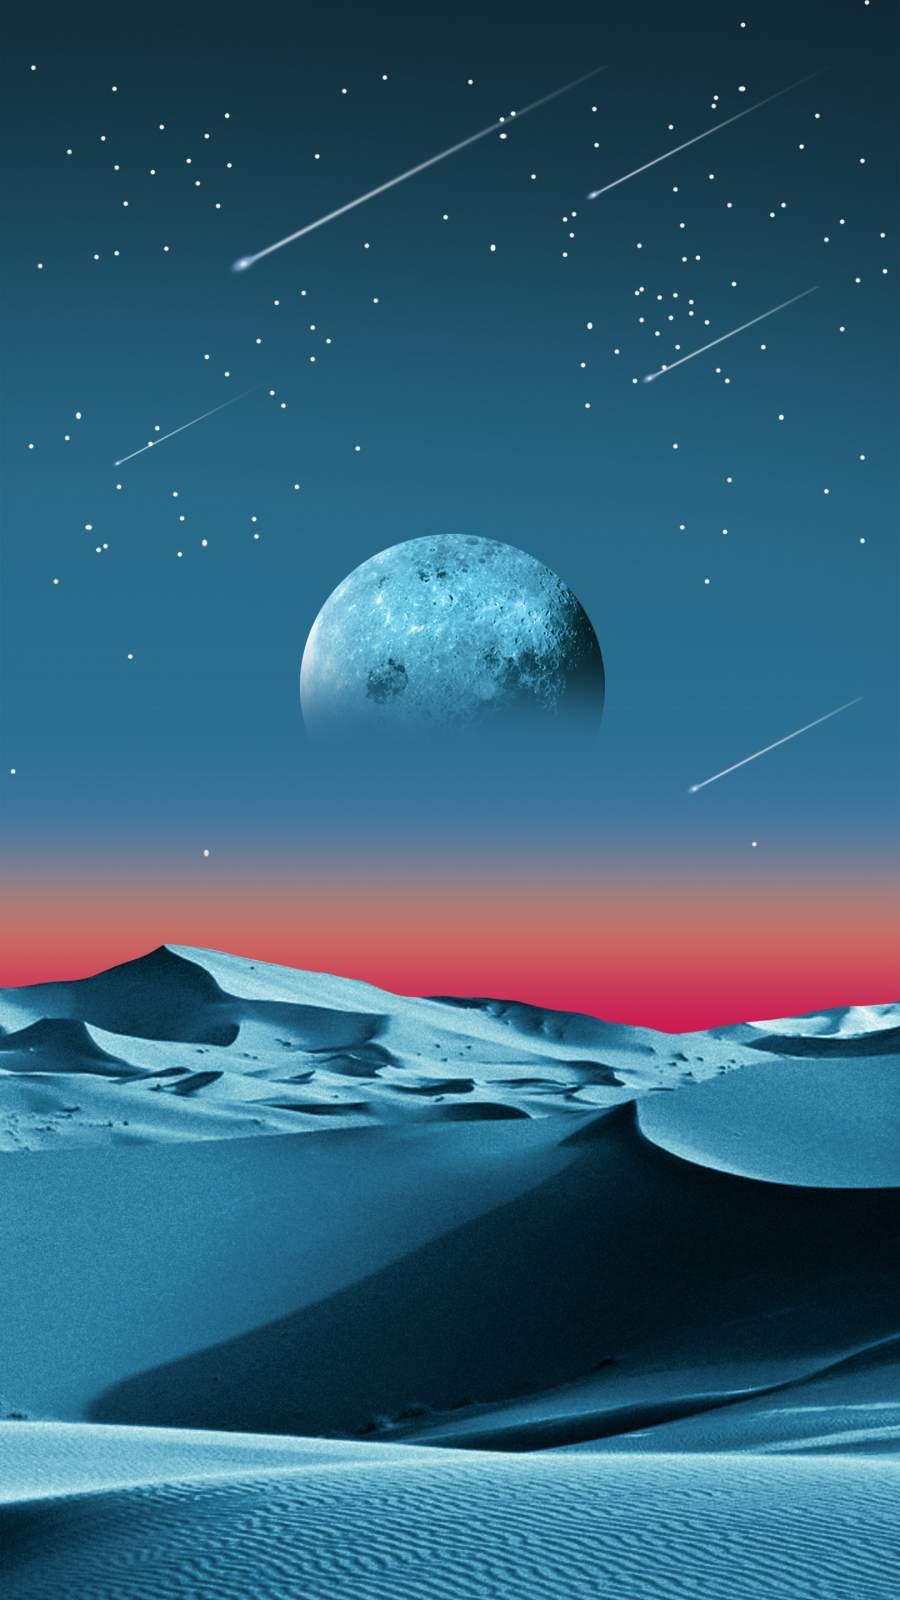 Desert Moon iPhone Wallpaper